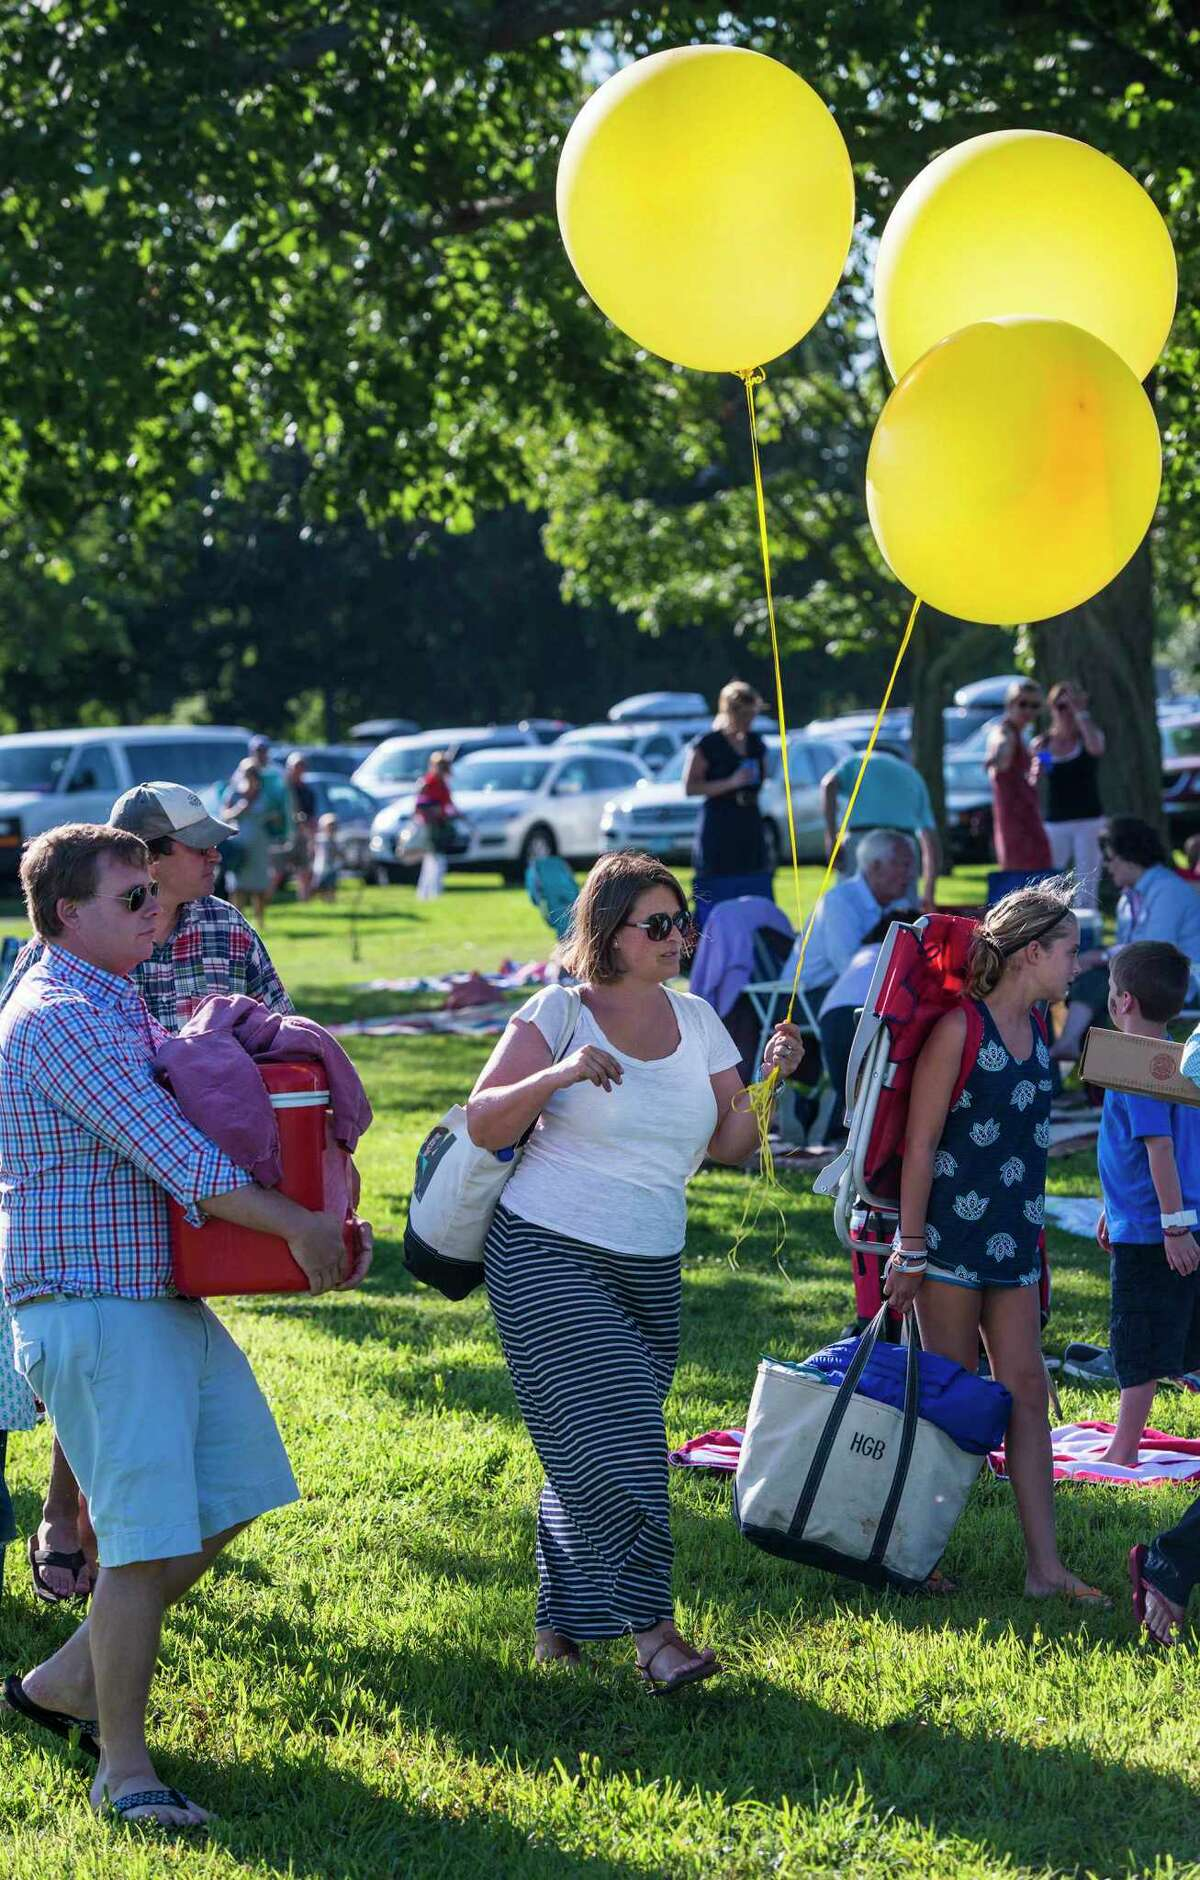 Jennifer Hladick, (center) a New Canaan resident, walks past other people at the town's annual Family Fourth event during a previous year of the celebration, with some balloons that she brought to it so that her friends could find her group at it. Hladick has been appointed to the town's Human Services Commission for a term that ends next December 2021.